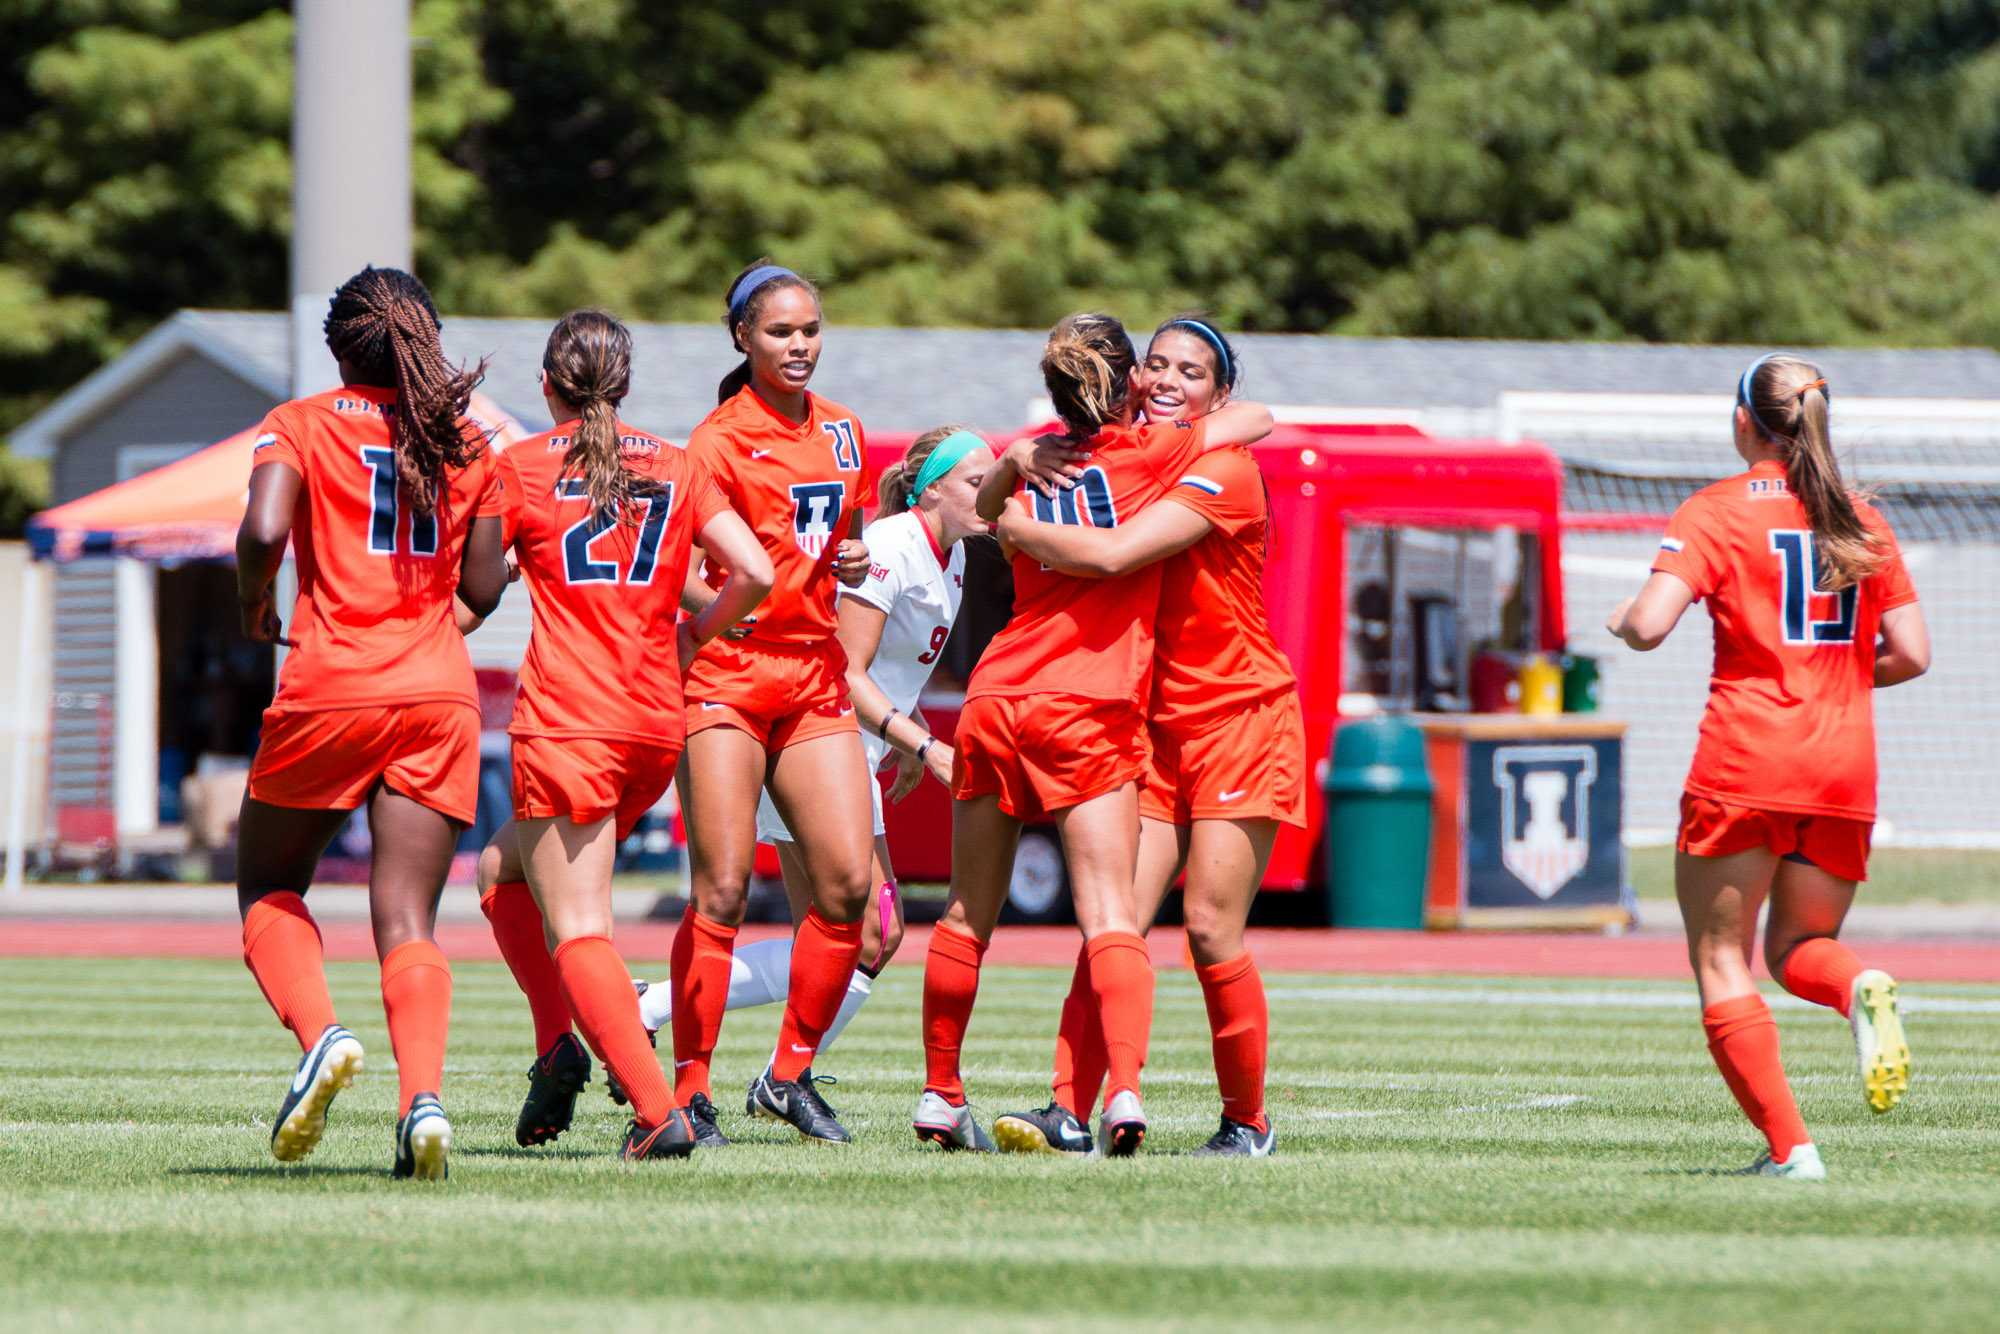 Illinois' Allison Stucky (10) gets a hug from Alicia Barker after scoring the only goal in the game against Illinois State at Illnois Soccer Stadium on Aug. 21. The Illini won 1-0.